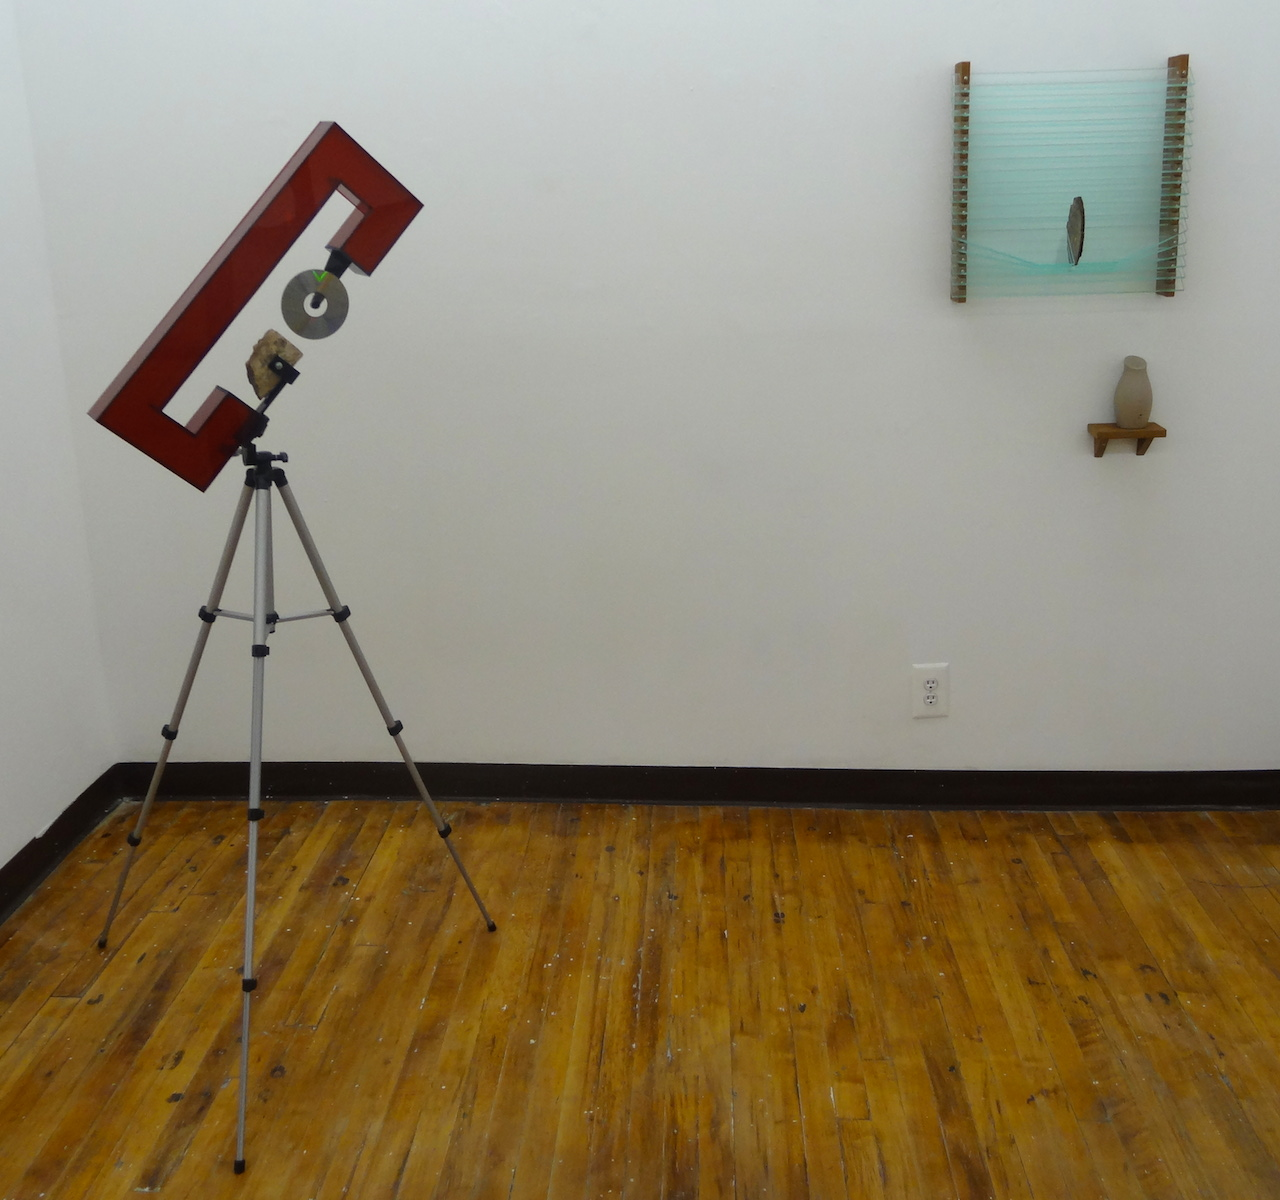 Works by Joshua Johnson, presented by Parallel Art Space, at The Active Space